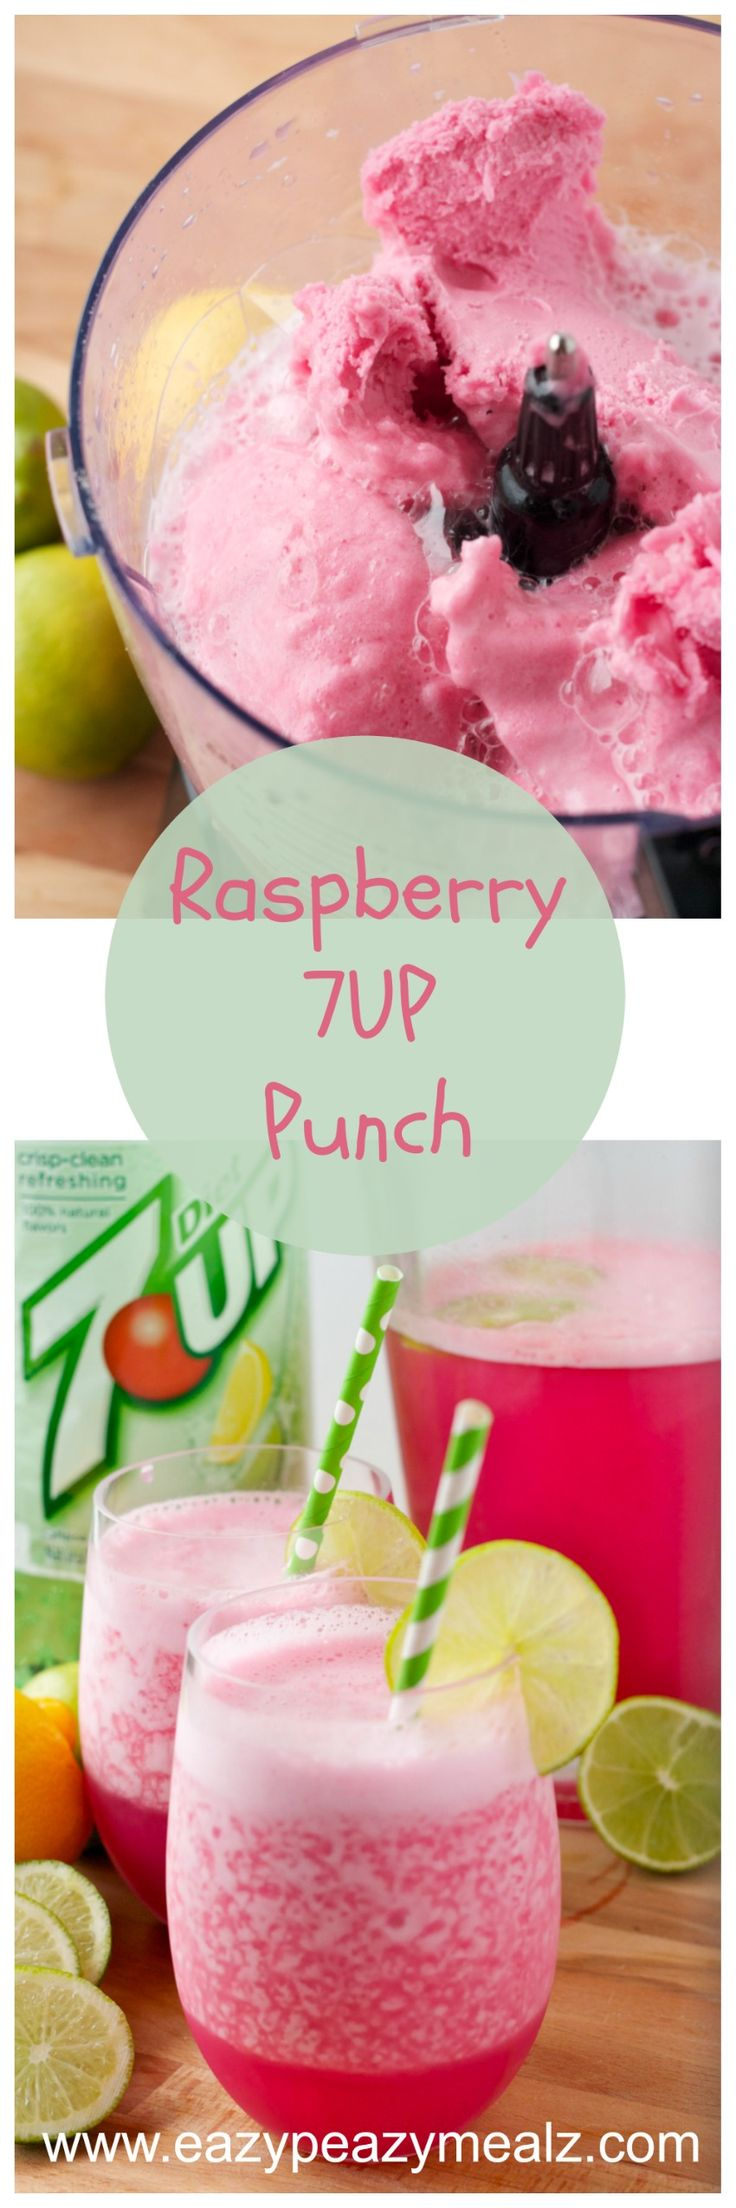 Raspberry 7 Up Punch: This easy to make punch is family friendly and perfect for a party!